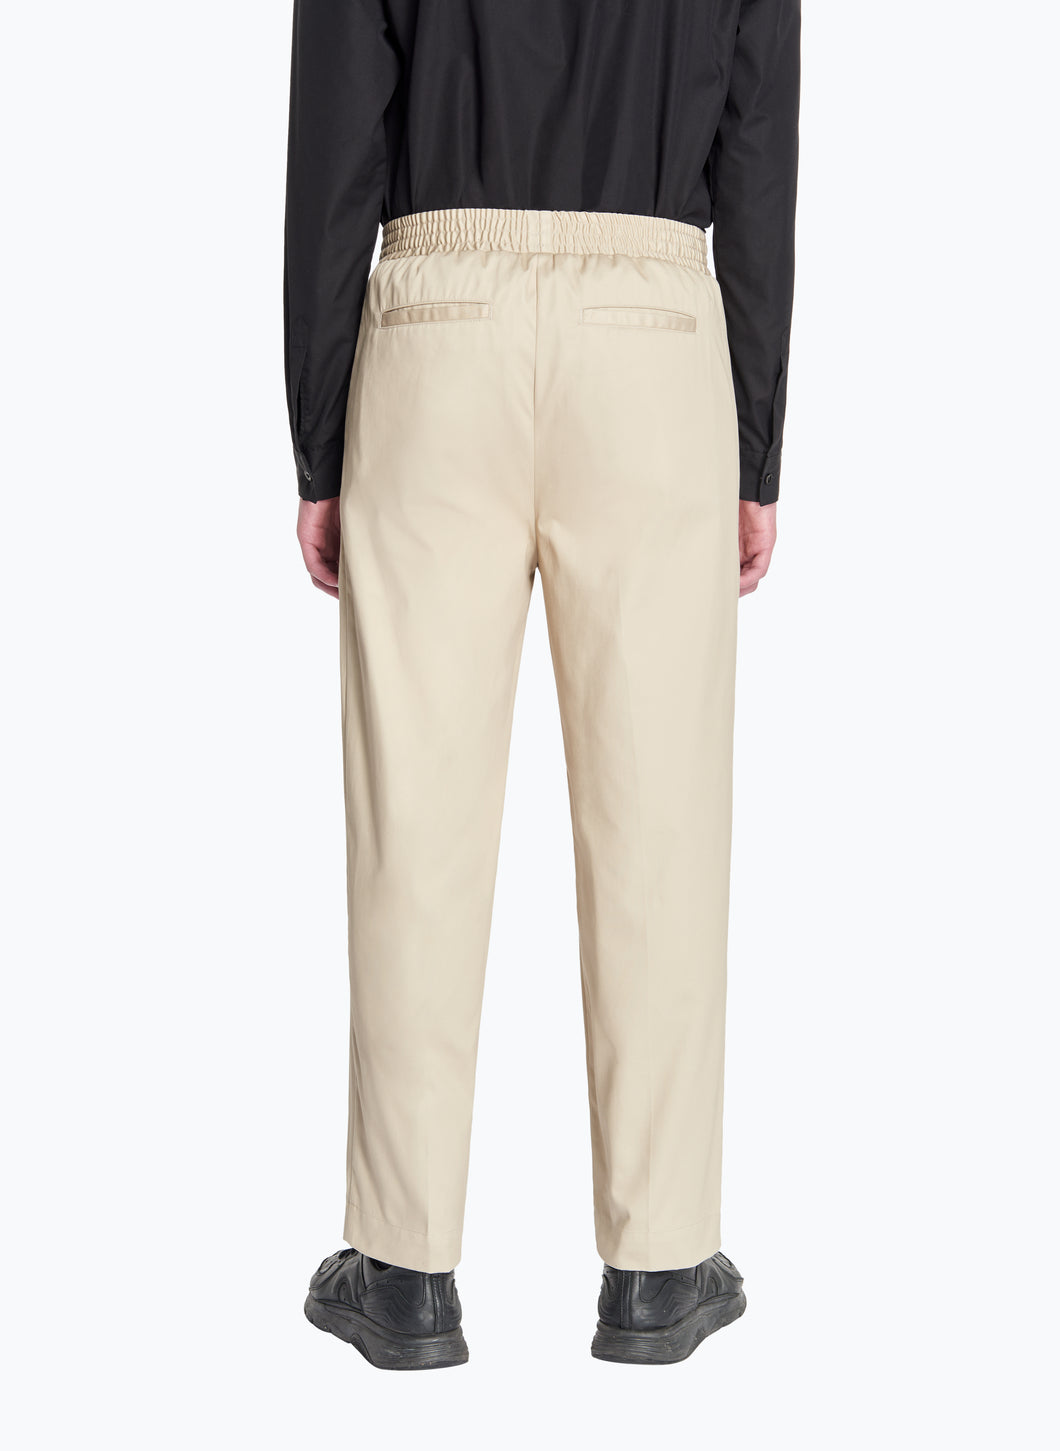 Pants with Large Elastic Waist in Beige Gabardine